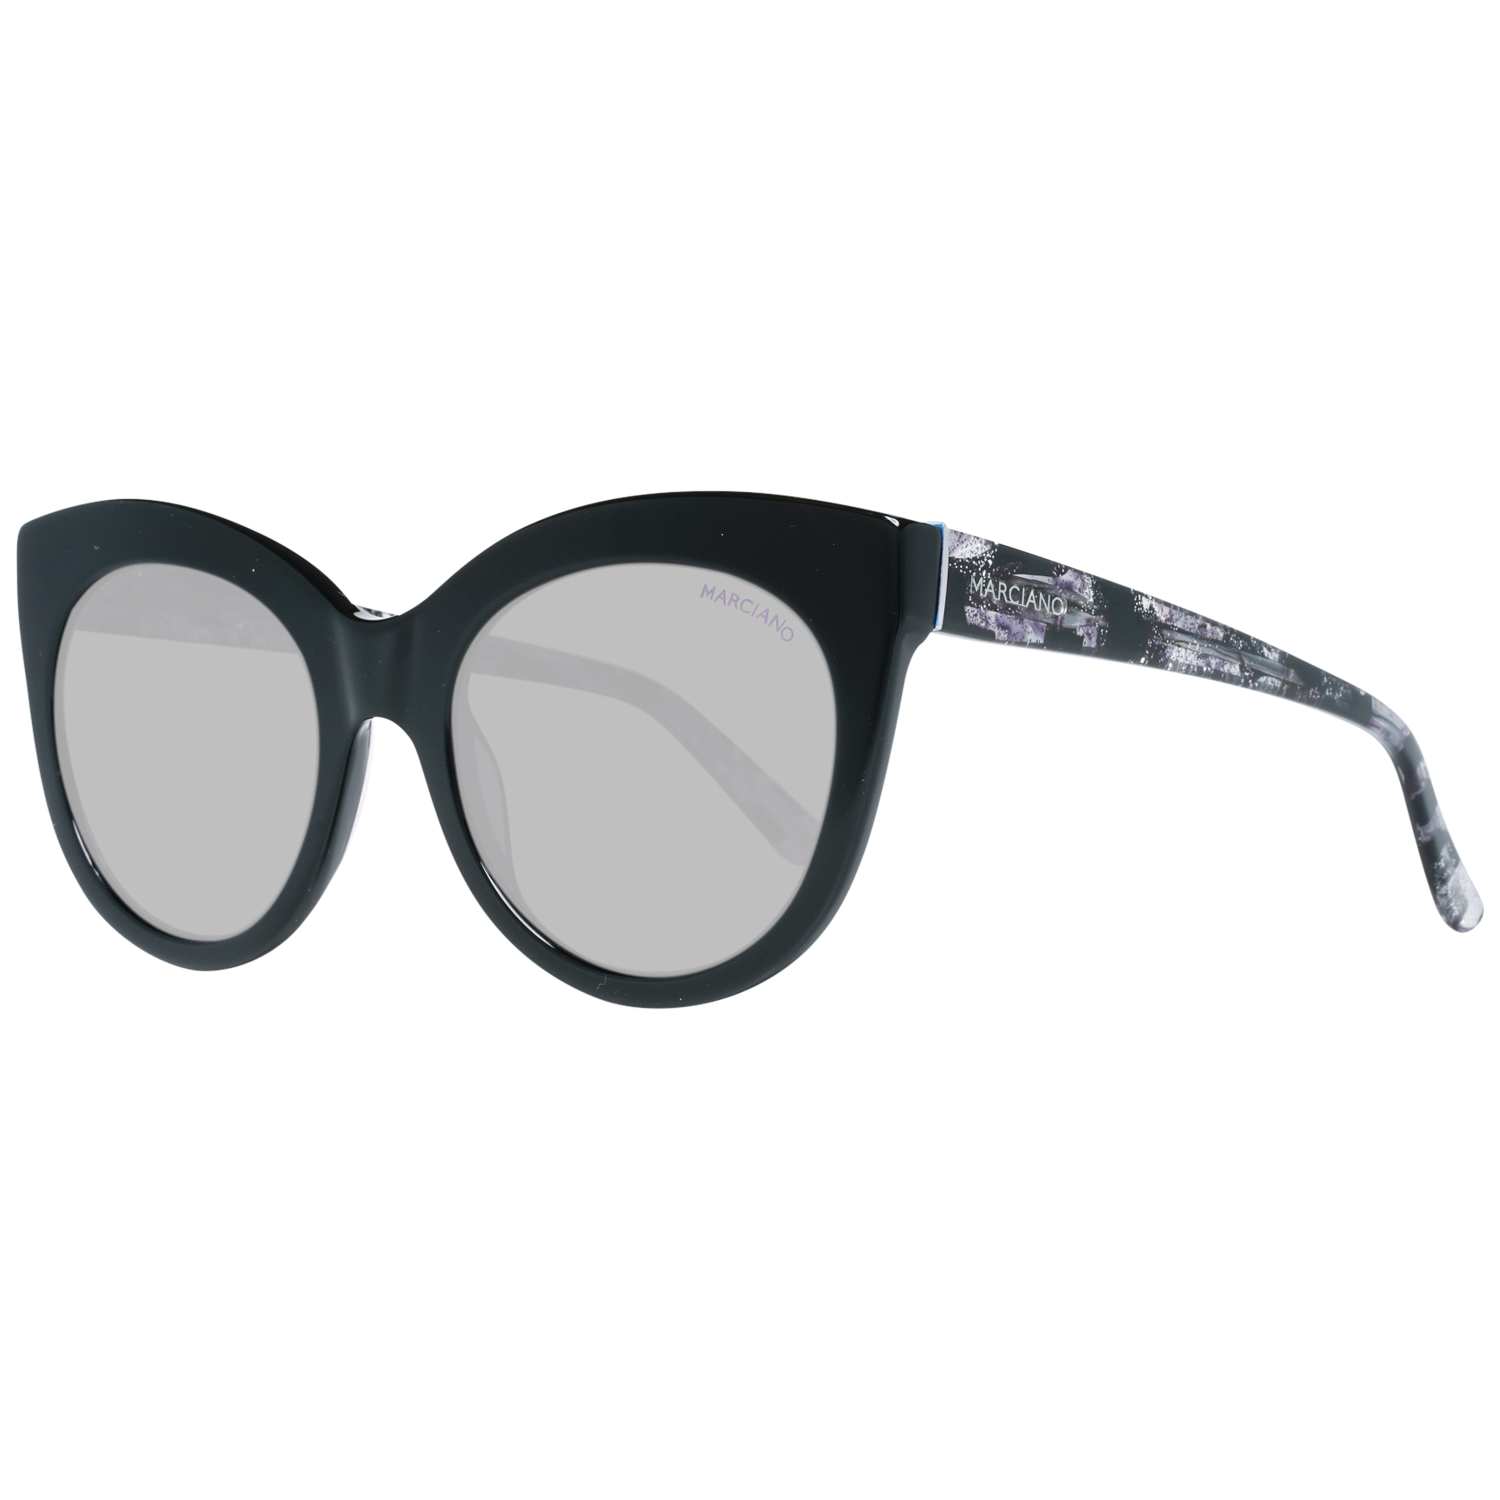 Guess by Marciano Sunglasses GM0760 01C 54 Black